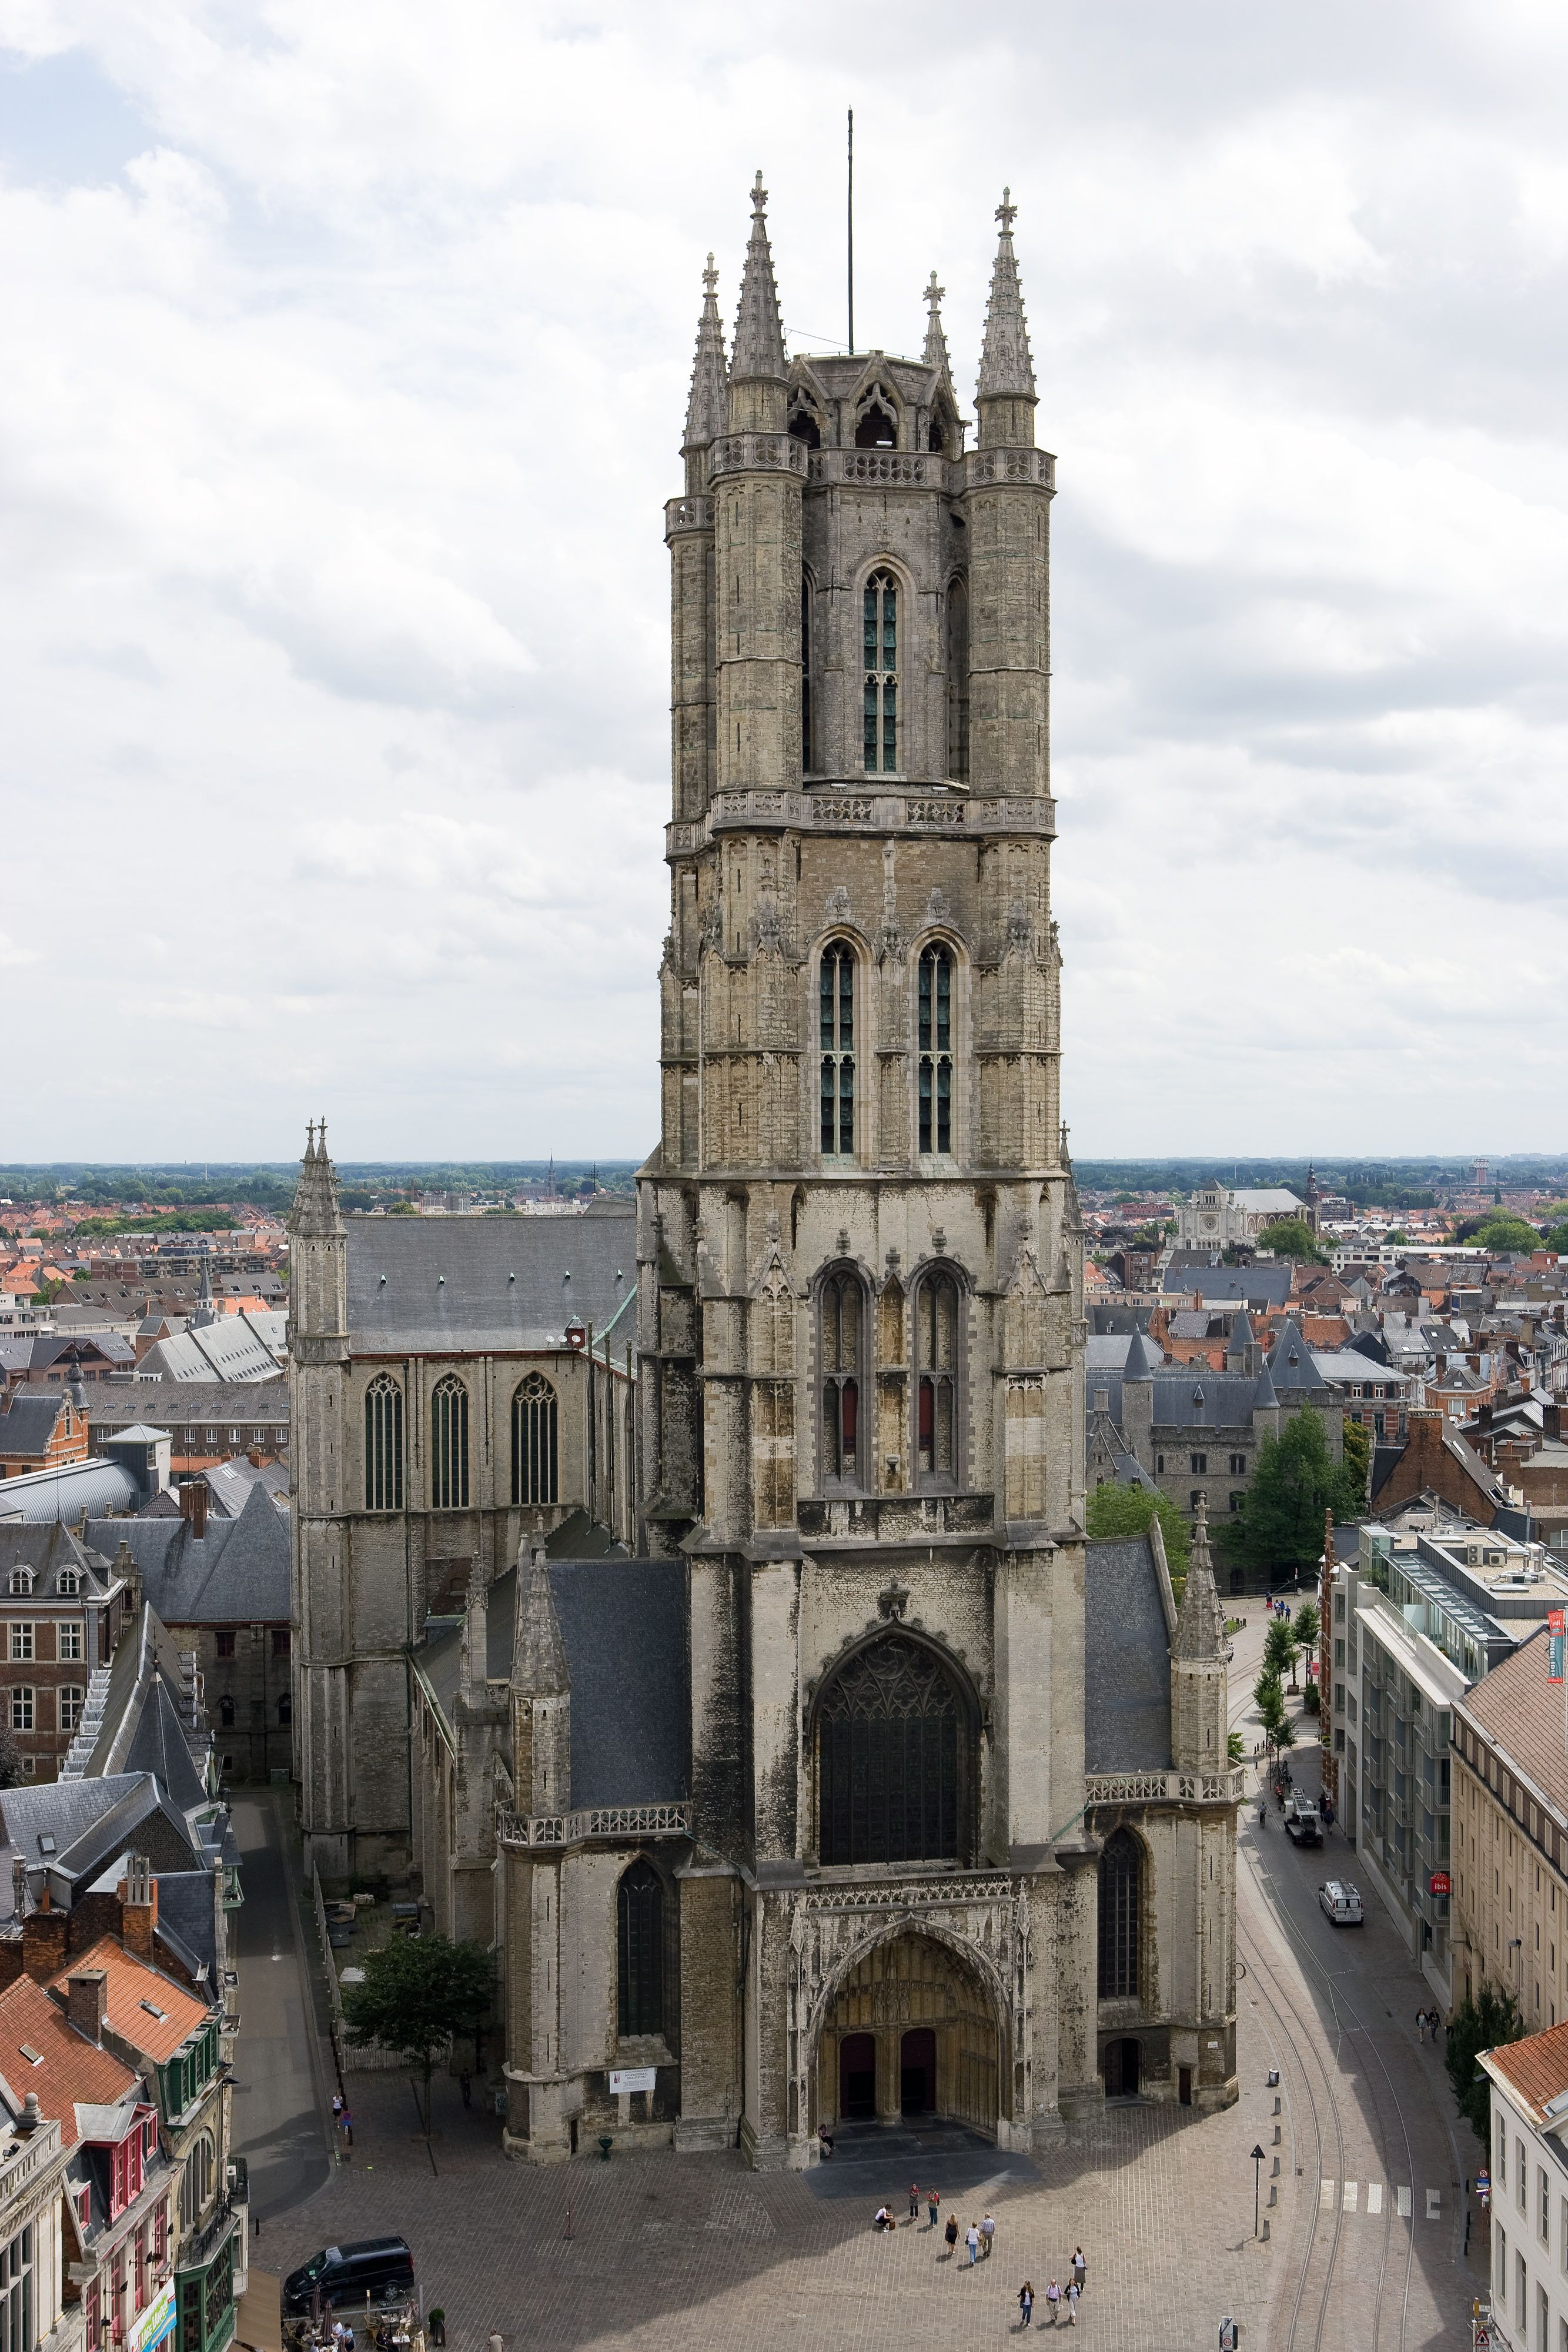 St Bavo's Cathedral Ghent. Belguim